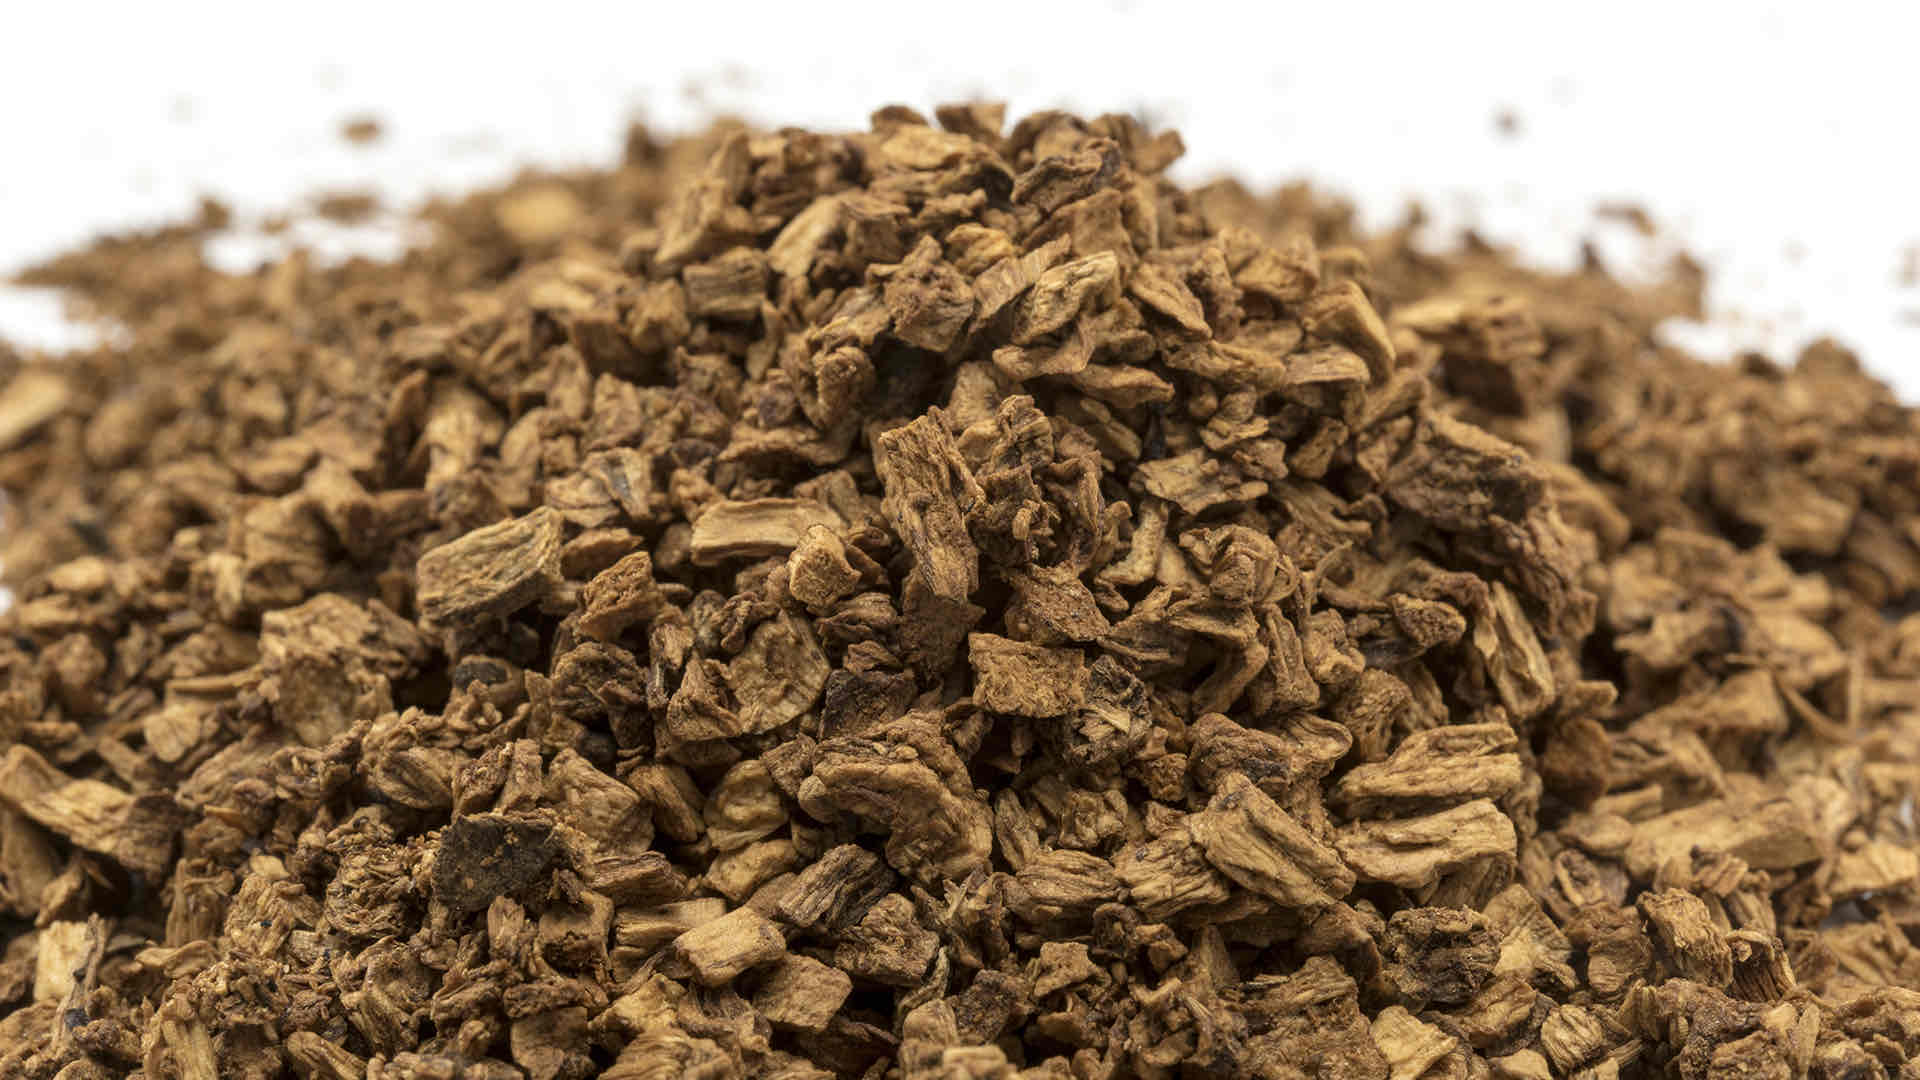 burdock root powder